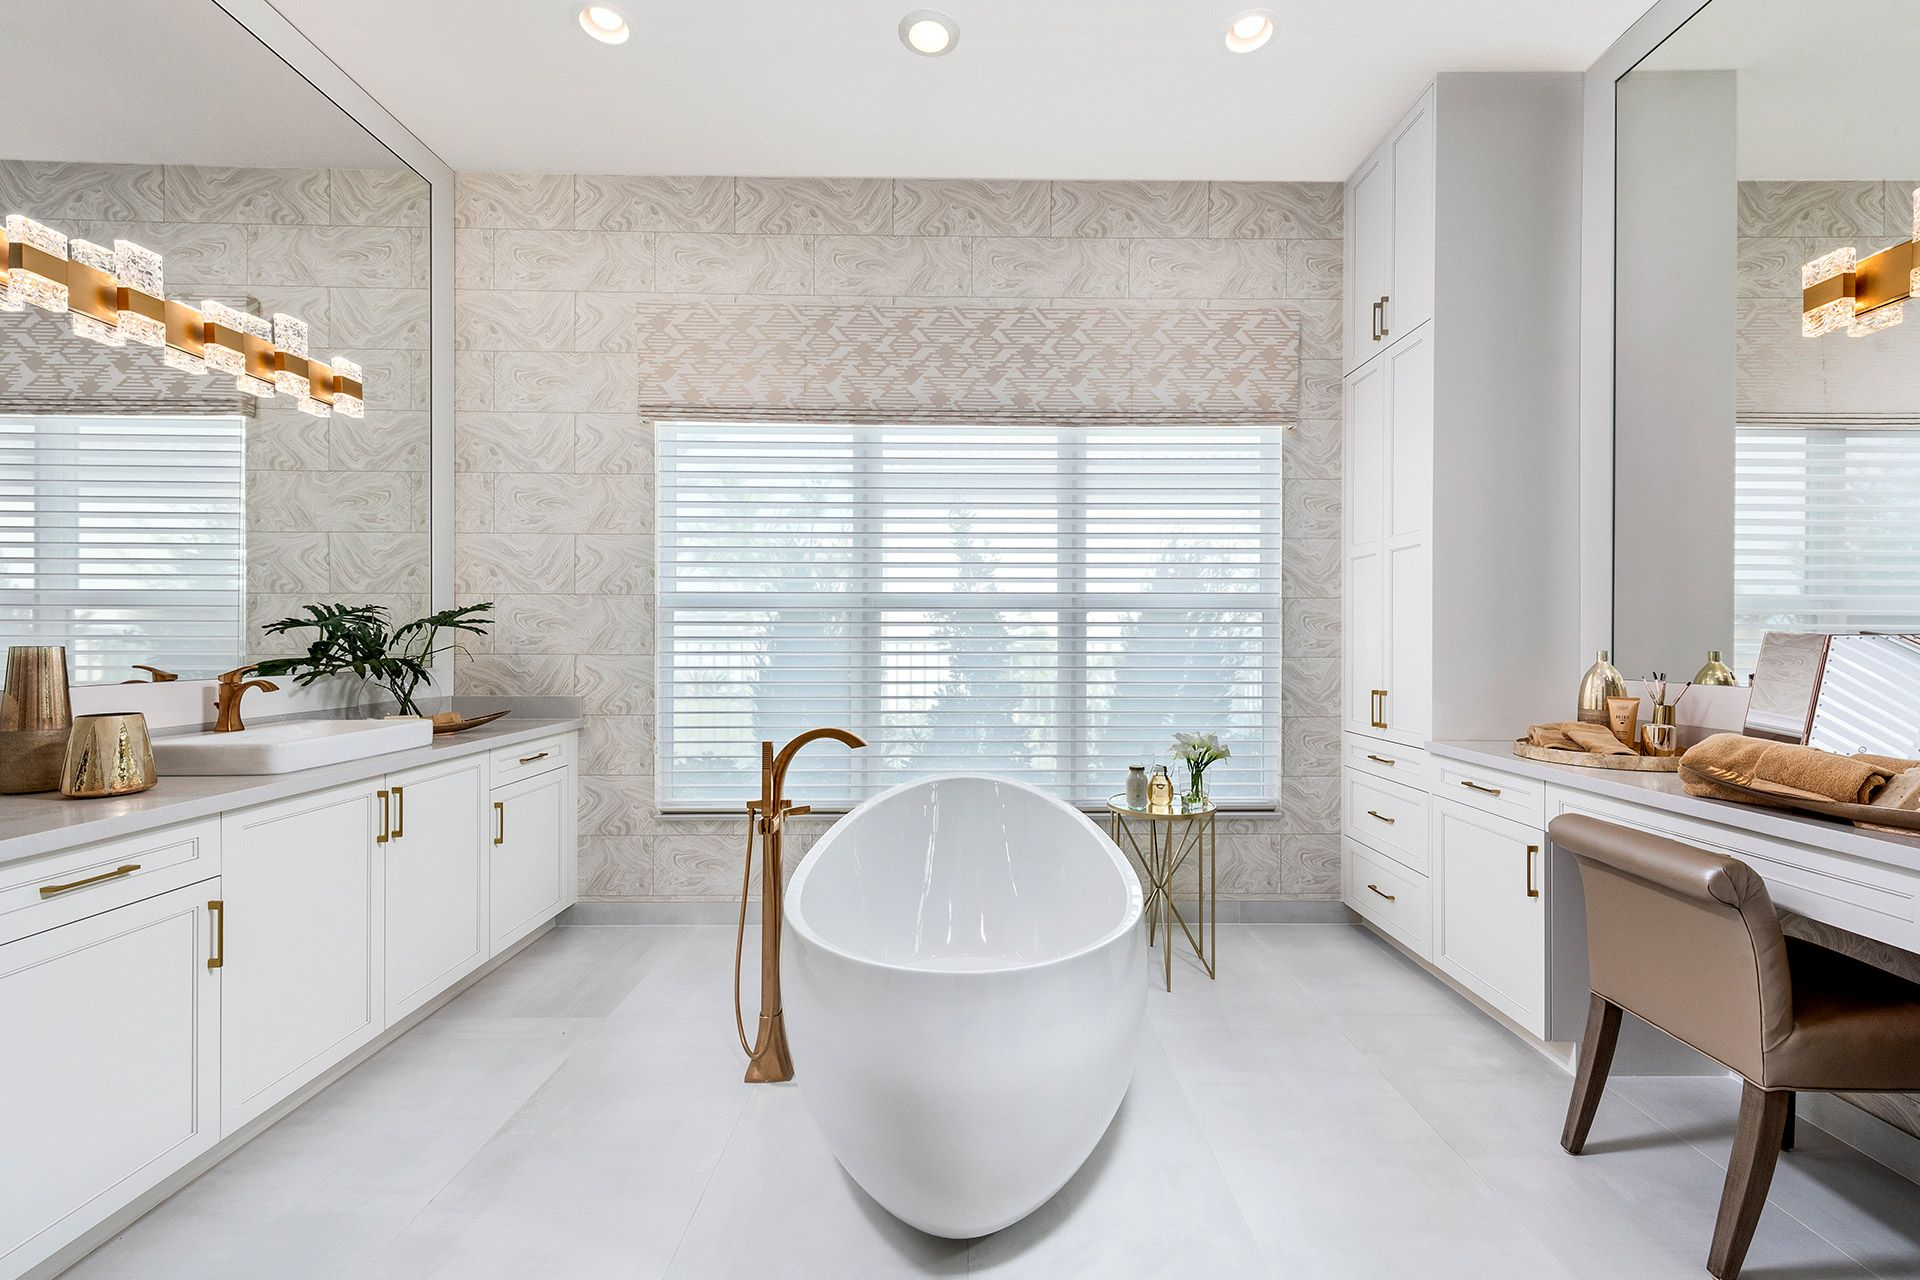 Bathroom featured in the Napa By GL Homes in Palm Beach County, FL